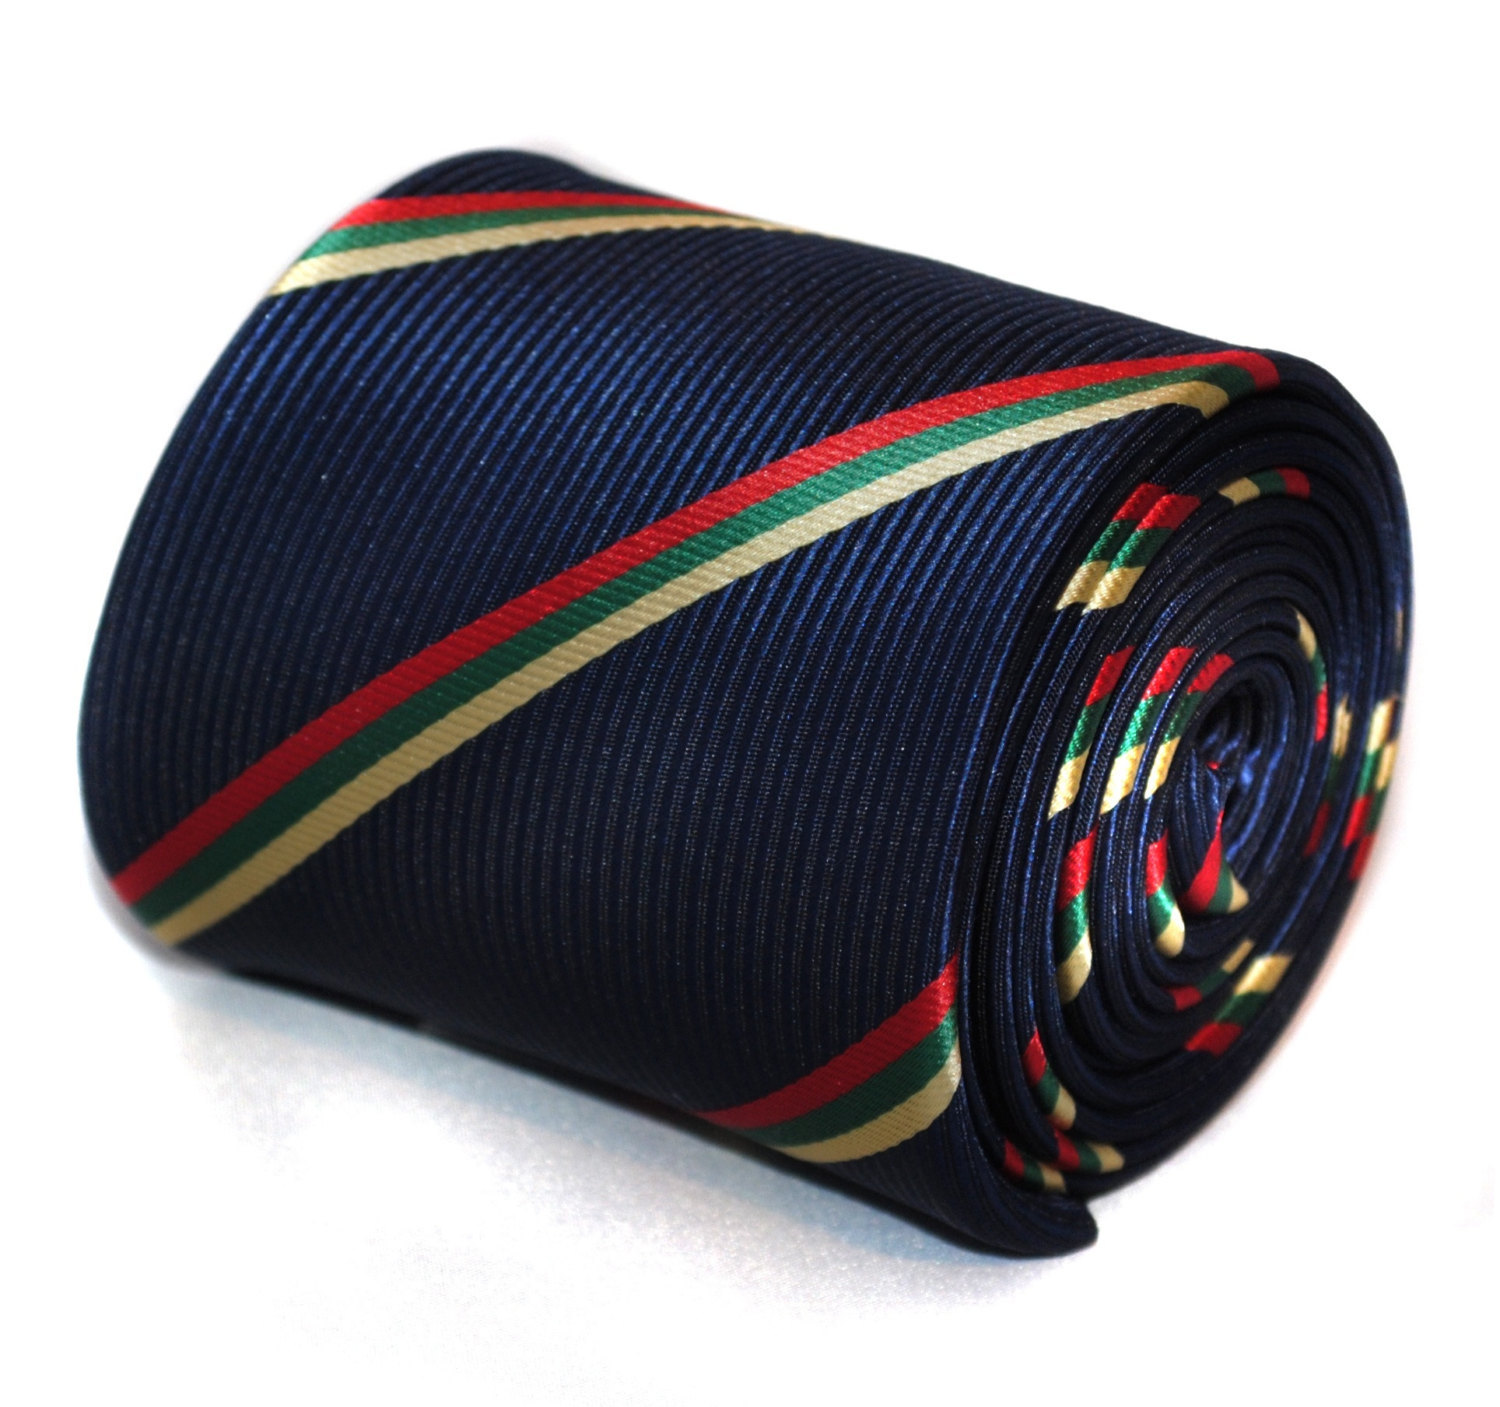 navy with green, yellow and red striped tie with signature floral design to the